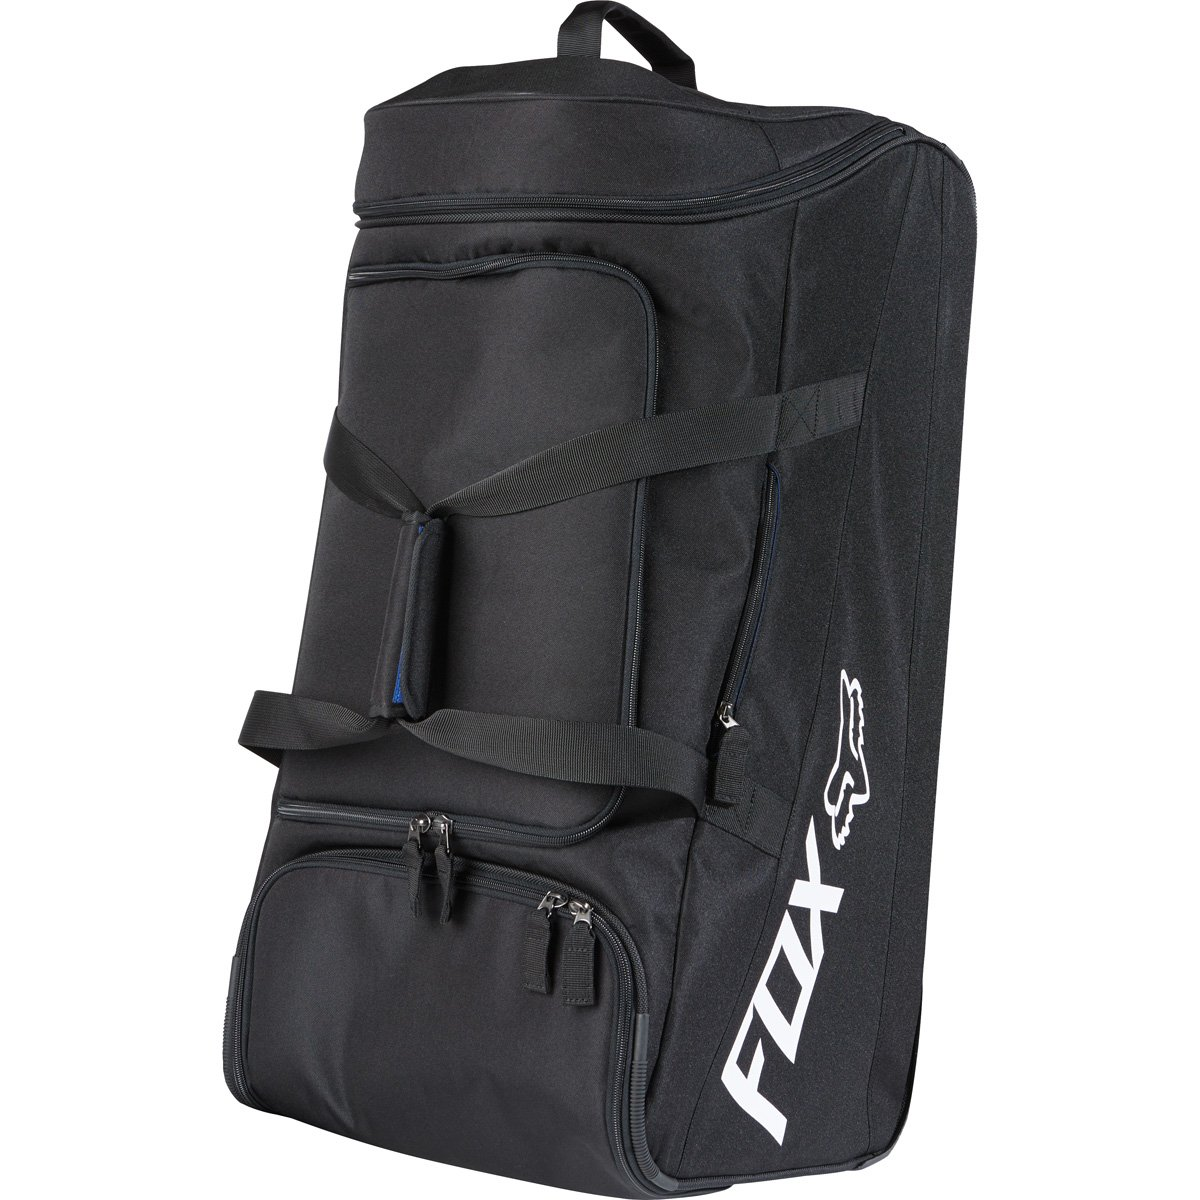 Fox Racing Track Side Roller Sports Gear Bag - Black / One Size by Fox Racing